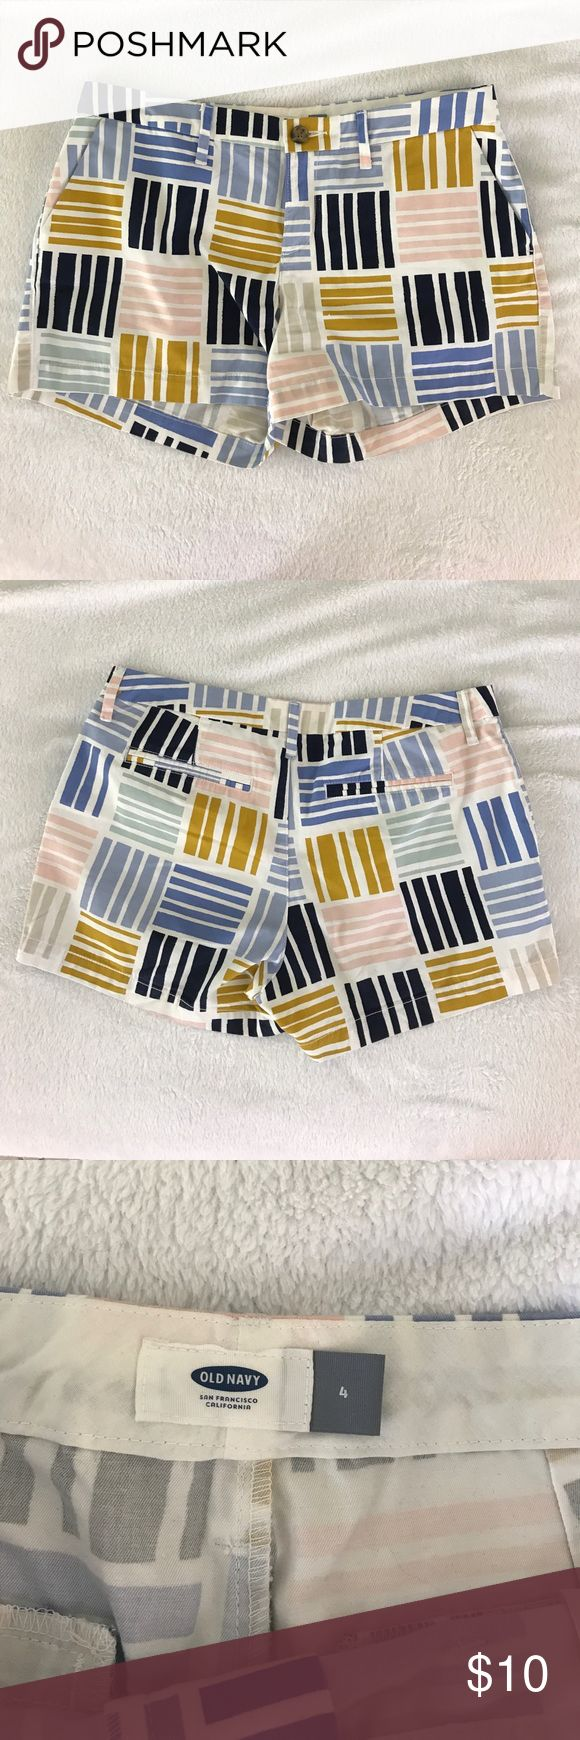 Pattern Old Navy shorts Subtle fun pattern shorts, hardly worn that they're still crisp! Grow your 2018 summer wardrobe for a huge discount! Old Navy Shorts